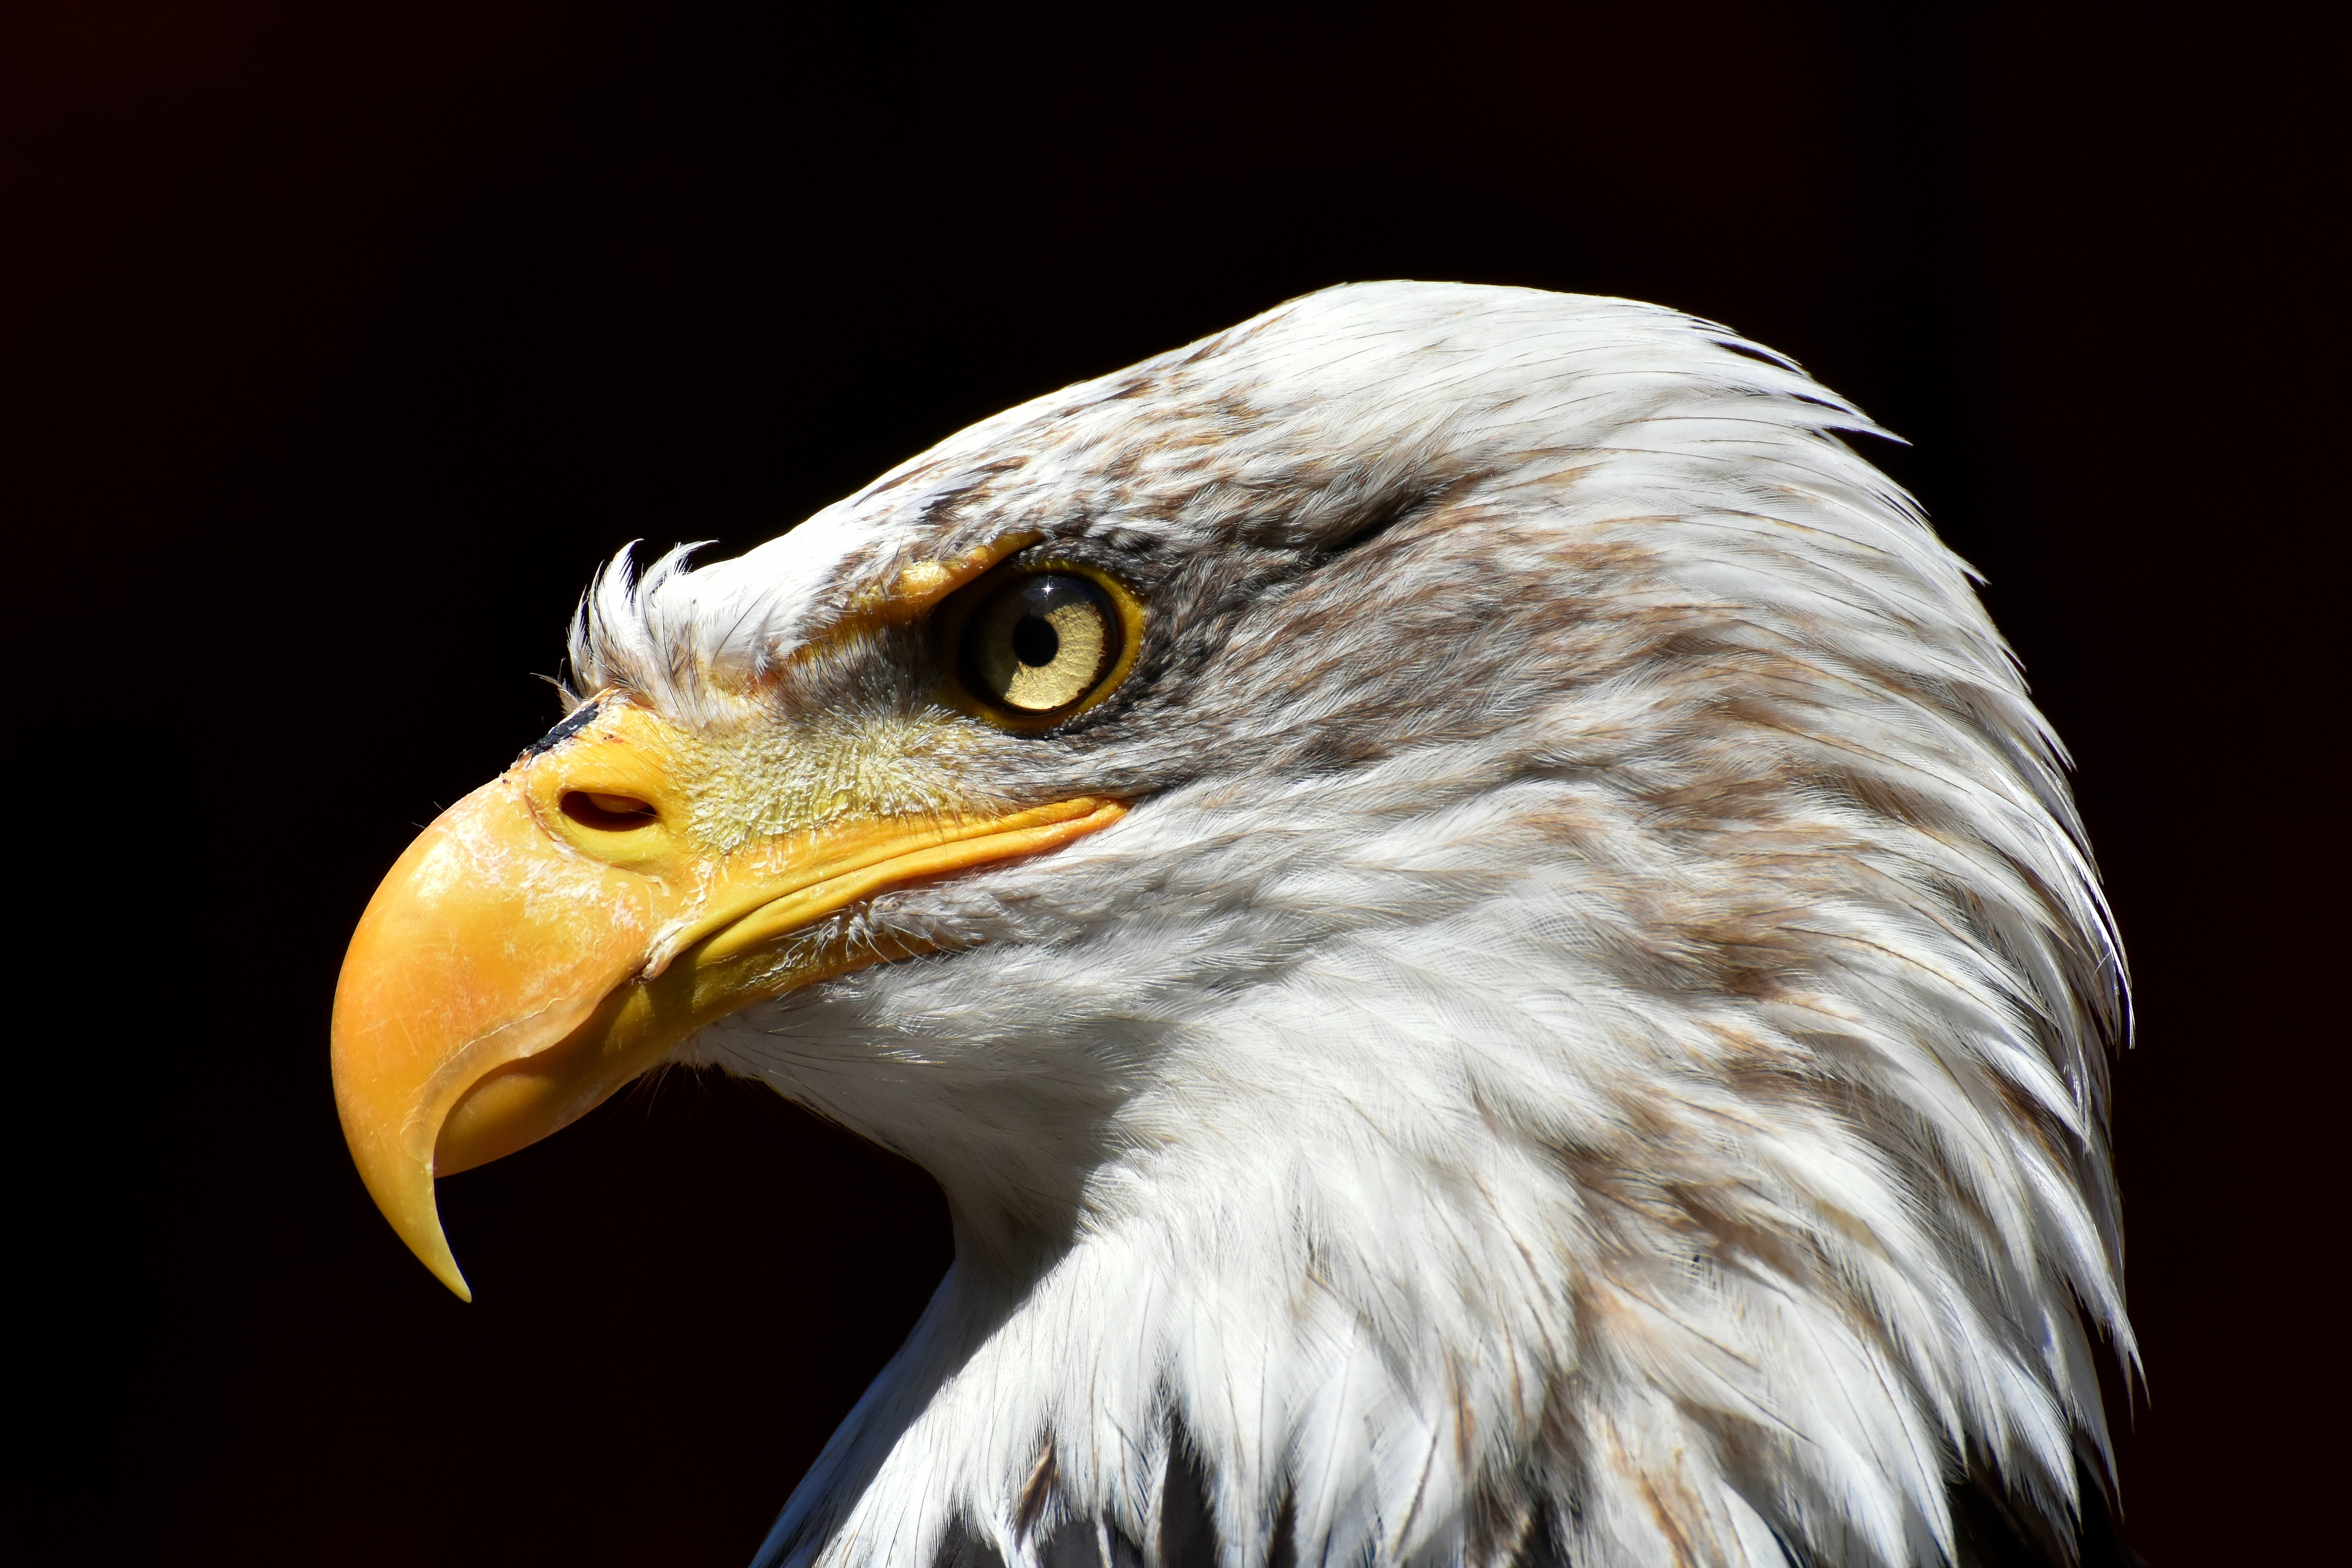 111016 download wallpaper Animals, Bald Eagle, White-Headed Eagle, Eagle, Beak, Predator, Bird screensavers and pictures for free